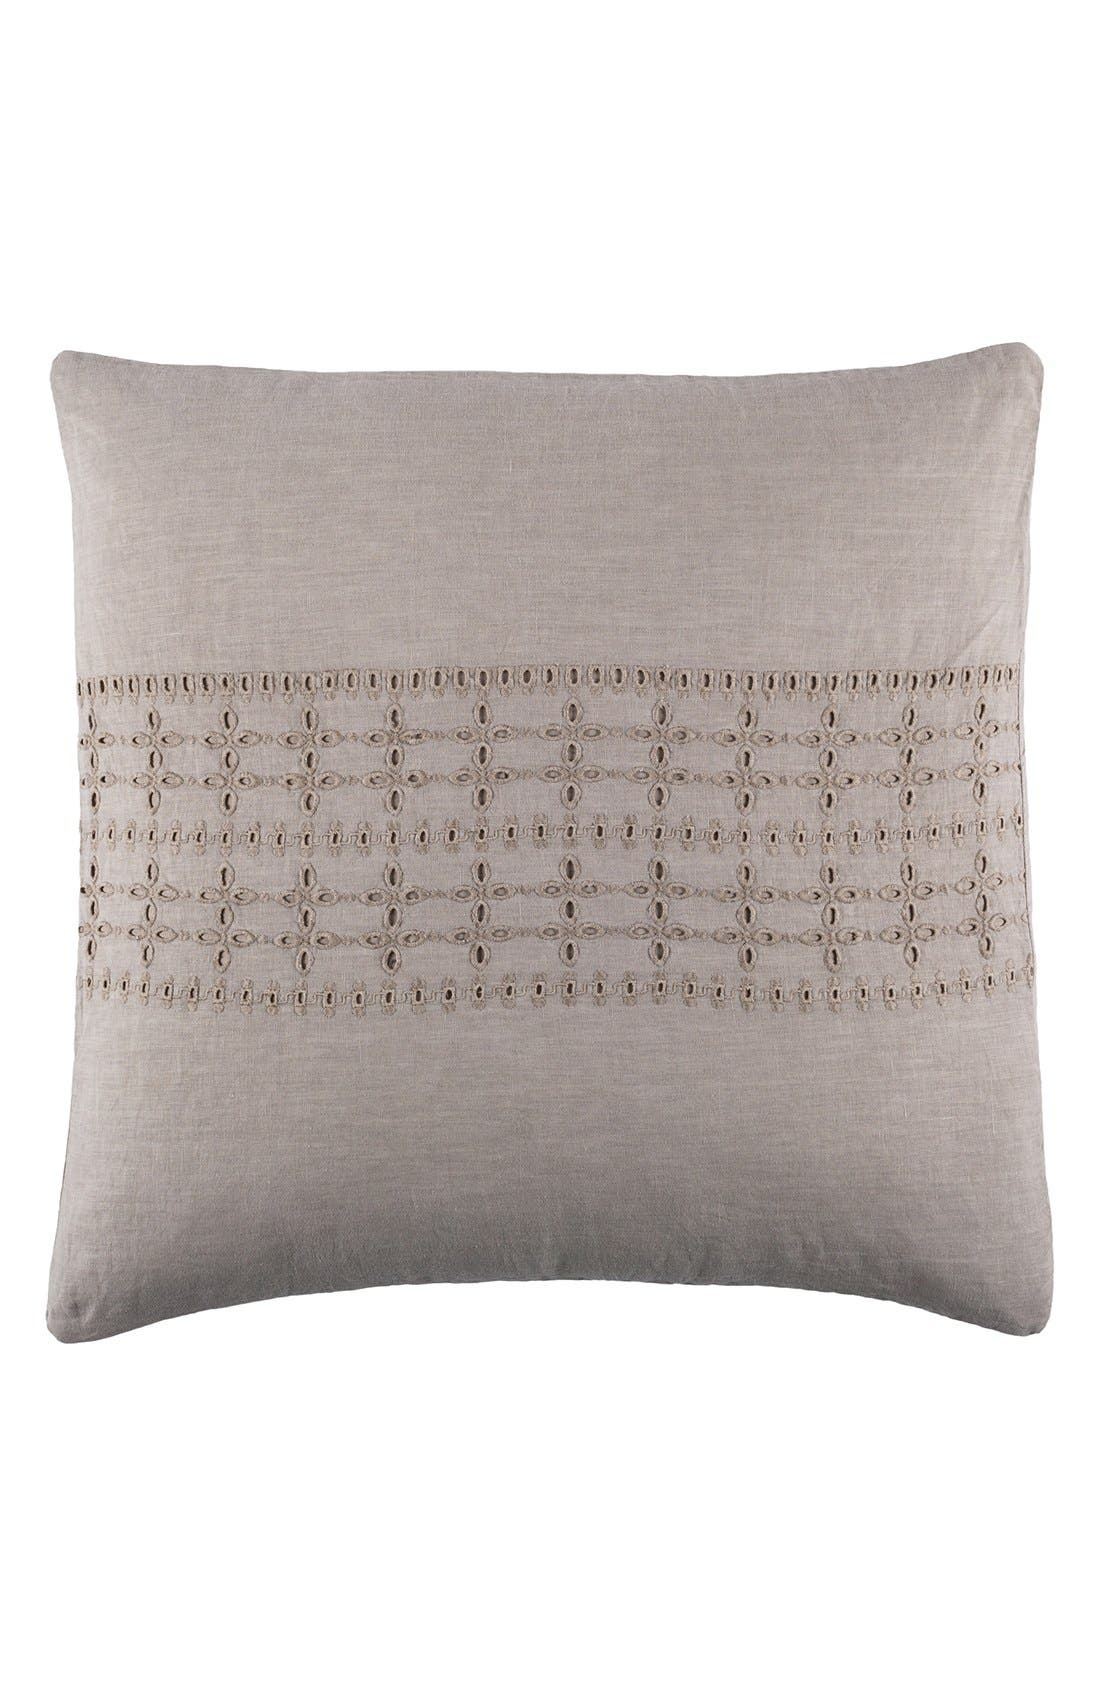 Alternate Image 1 Selected - Pom Pom at Home 'Layla' Linen Euro Sham